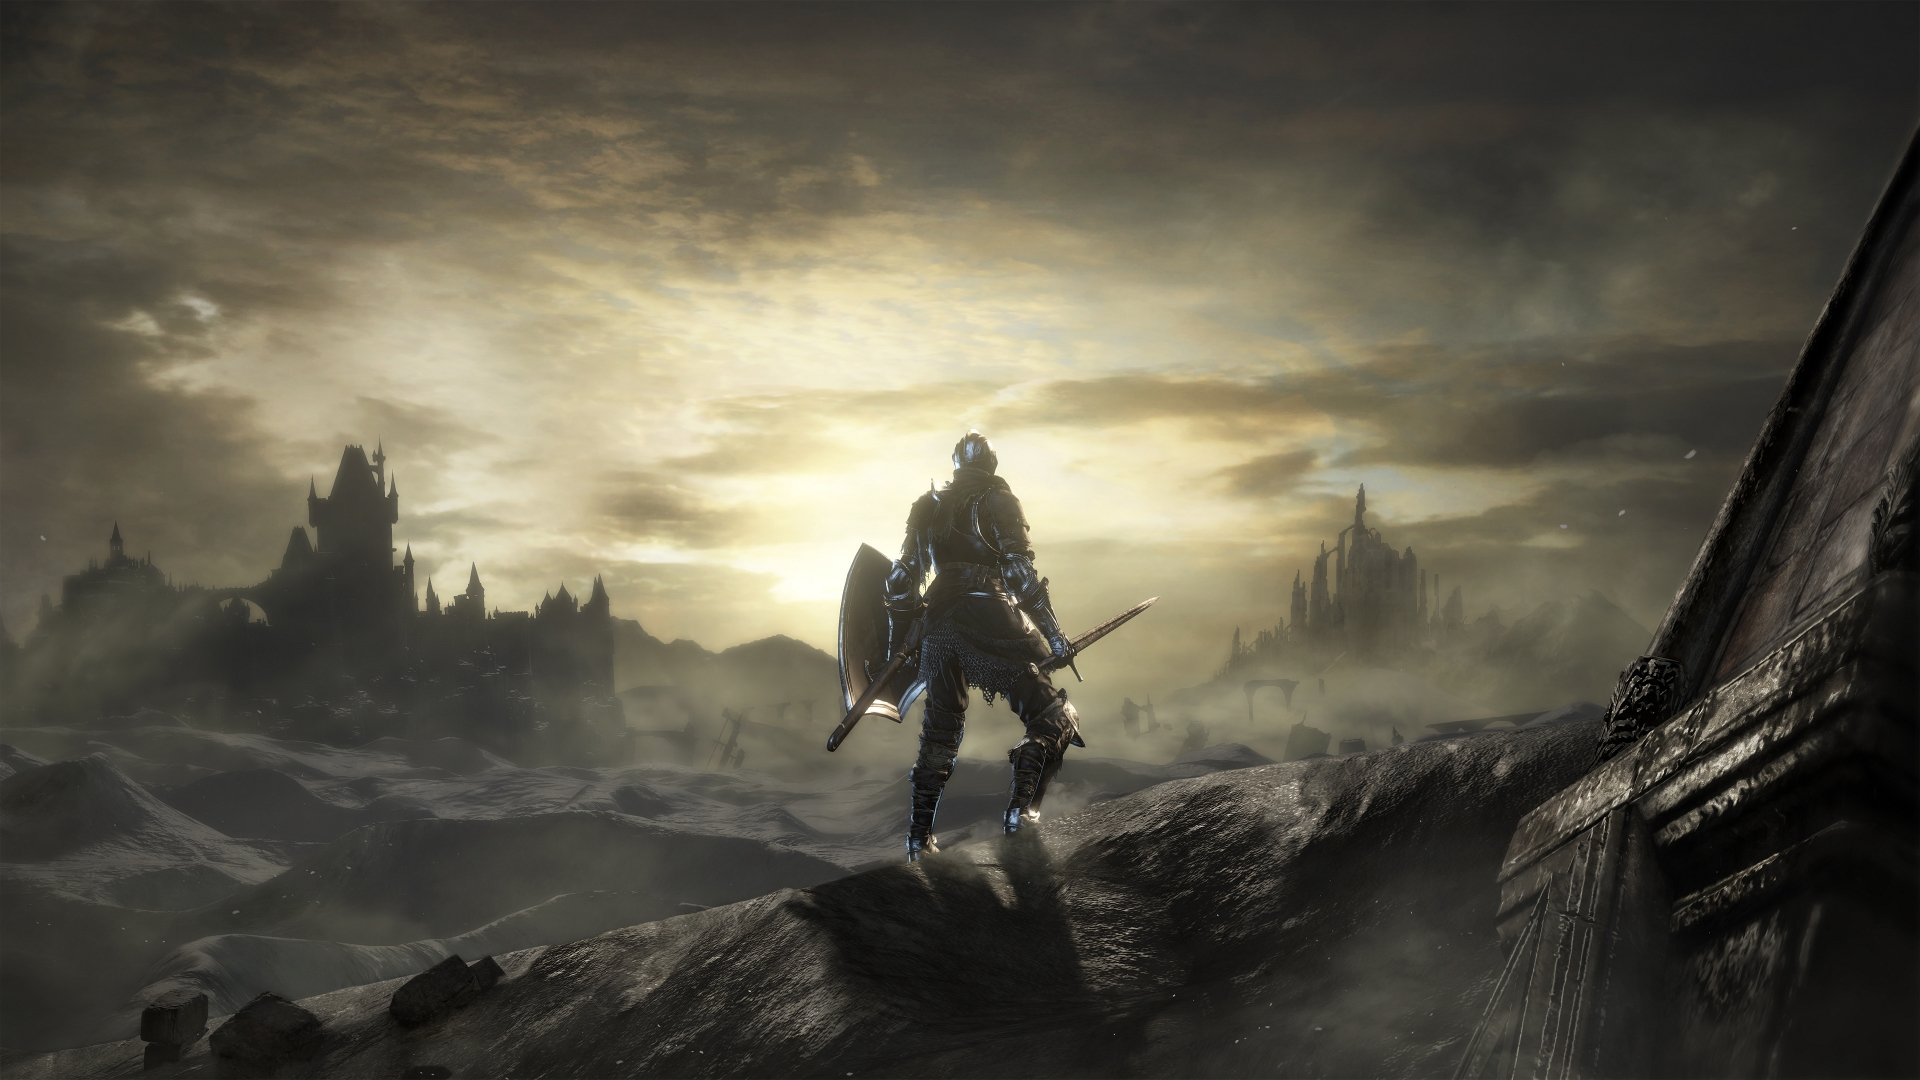 Dark Souls III: The Ringed City (PS4) - the end of everything